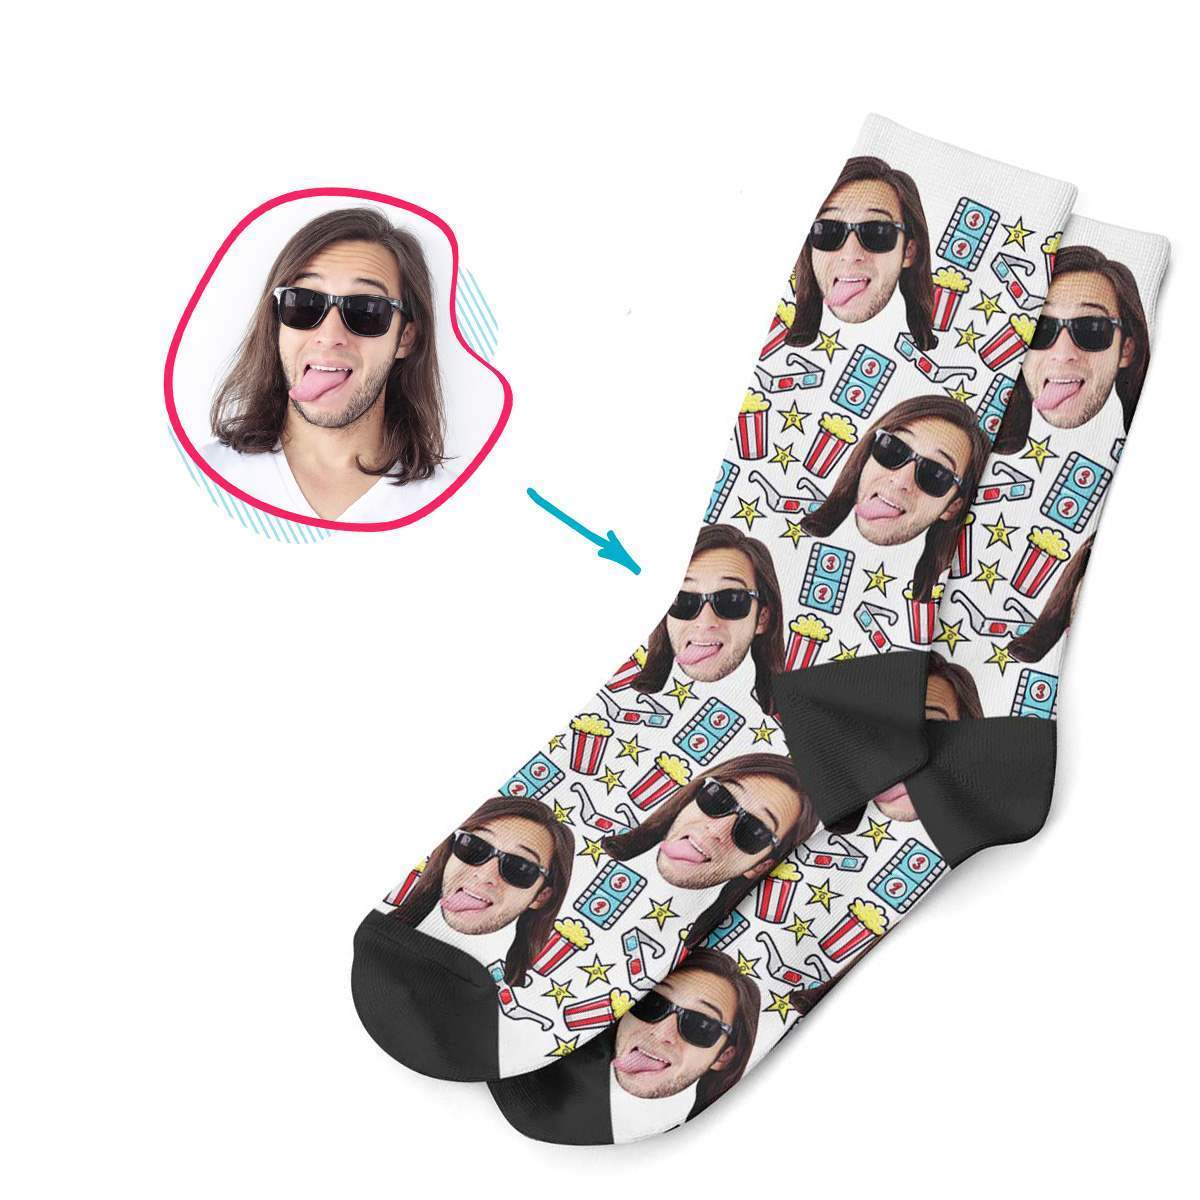 white Movie socks personalized with photo of face printed on them